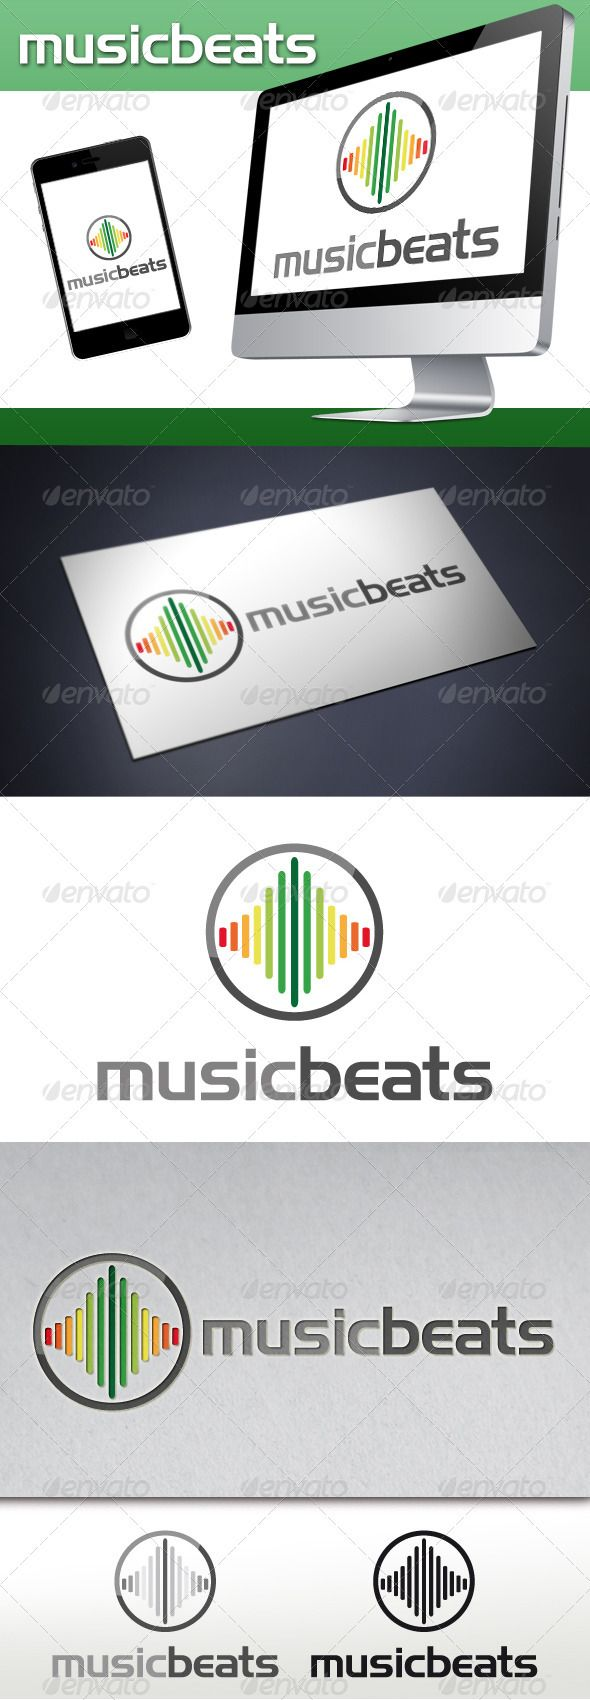 Music Beats Logo — Vector EPS #equalizer logo #dj logo • Available here → https://graphicriver.net/item/music-beats-logo/3470991?ref=pxcr